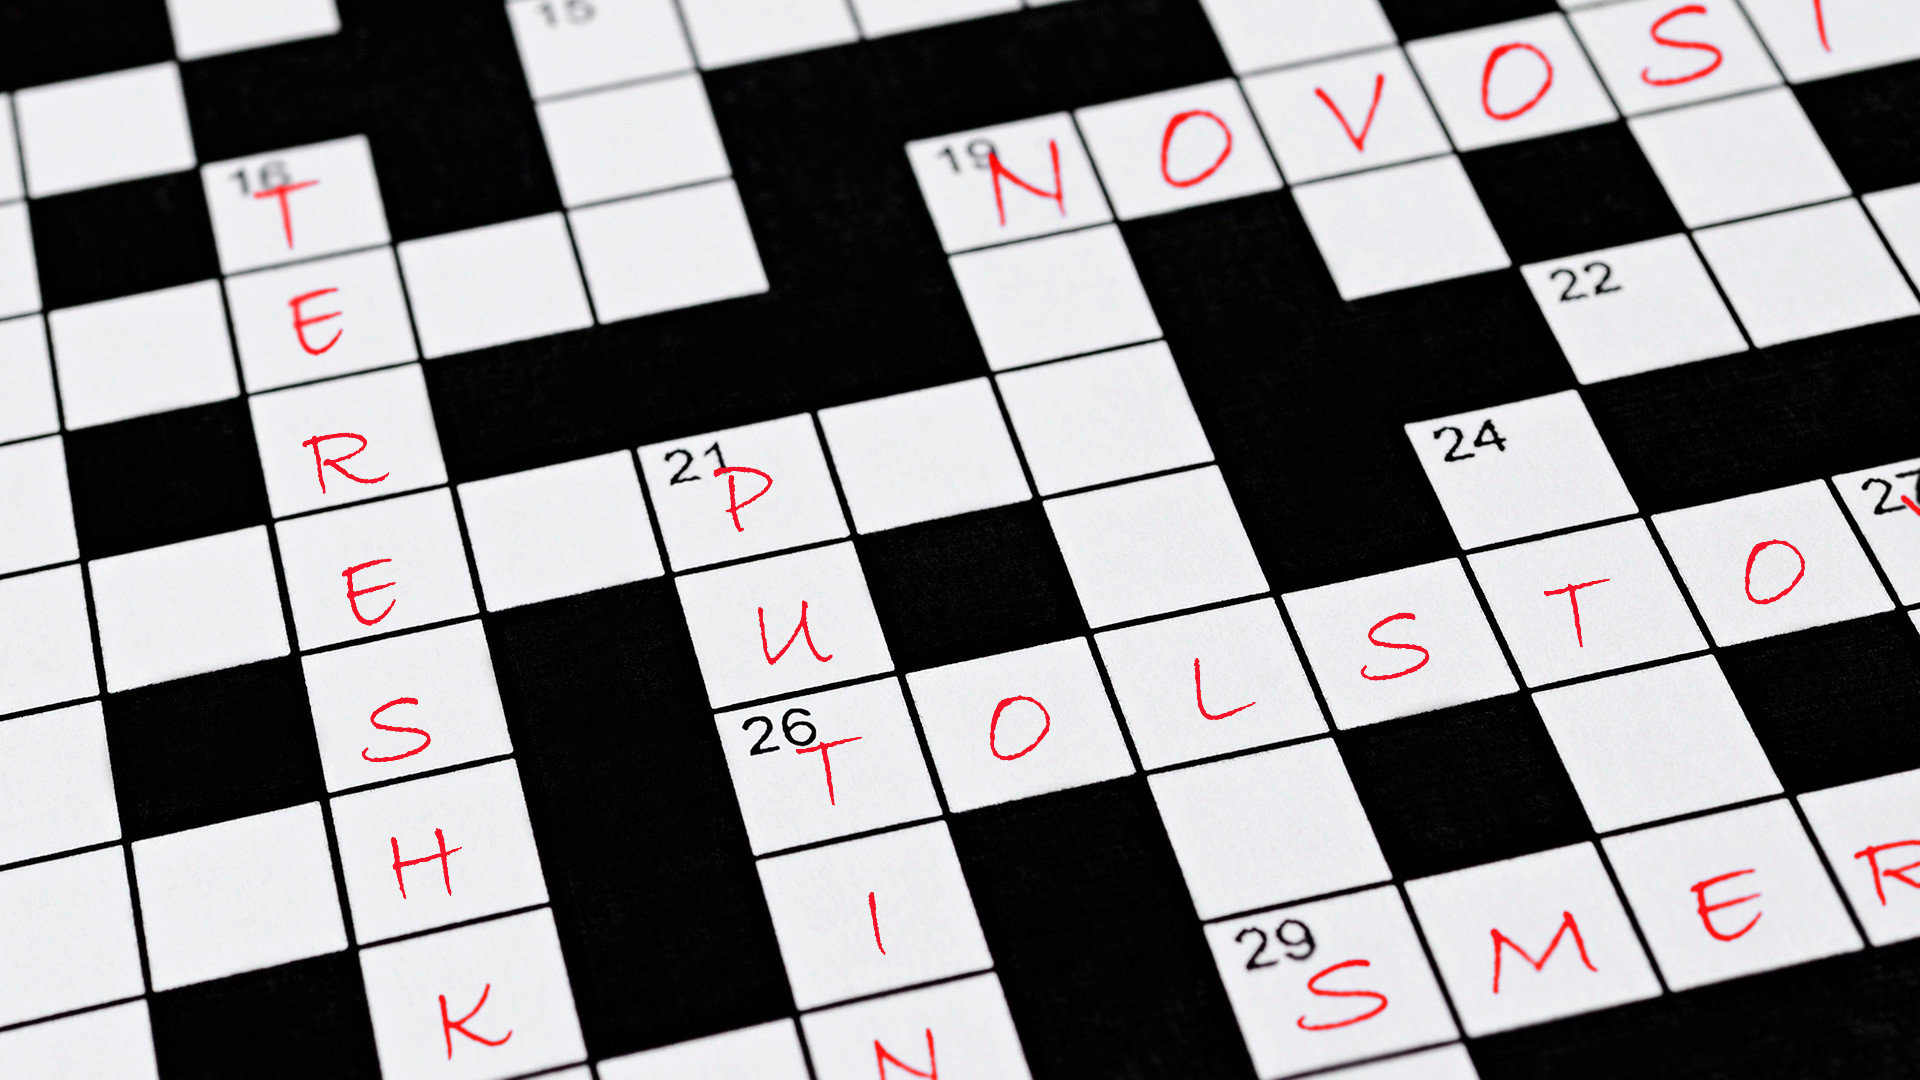 All Russia Related Crossword Clues Russia Beyond